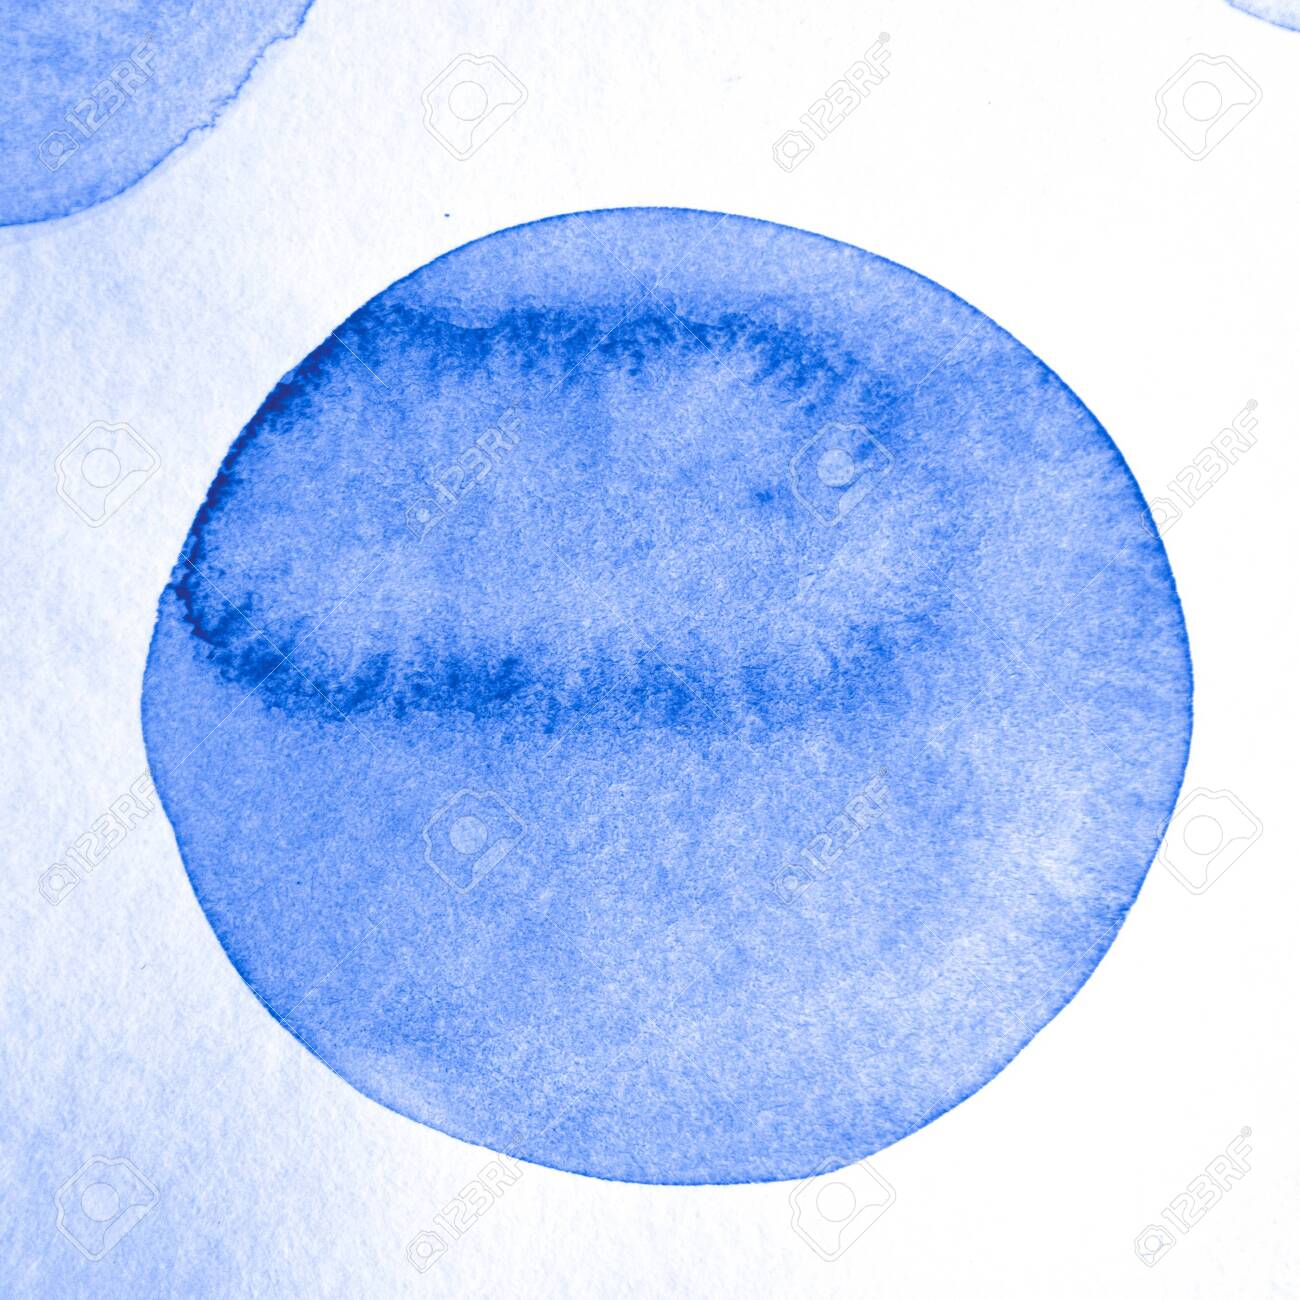 Indigo Circle Pattern. Round Background. Color Artistic Confetti. Grunge Snow Design. Circle Textile. White Cool Abstract Painting. Circle Texture. Blue Retro Snow Design. - 154760410